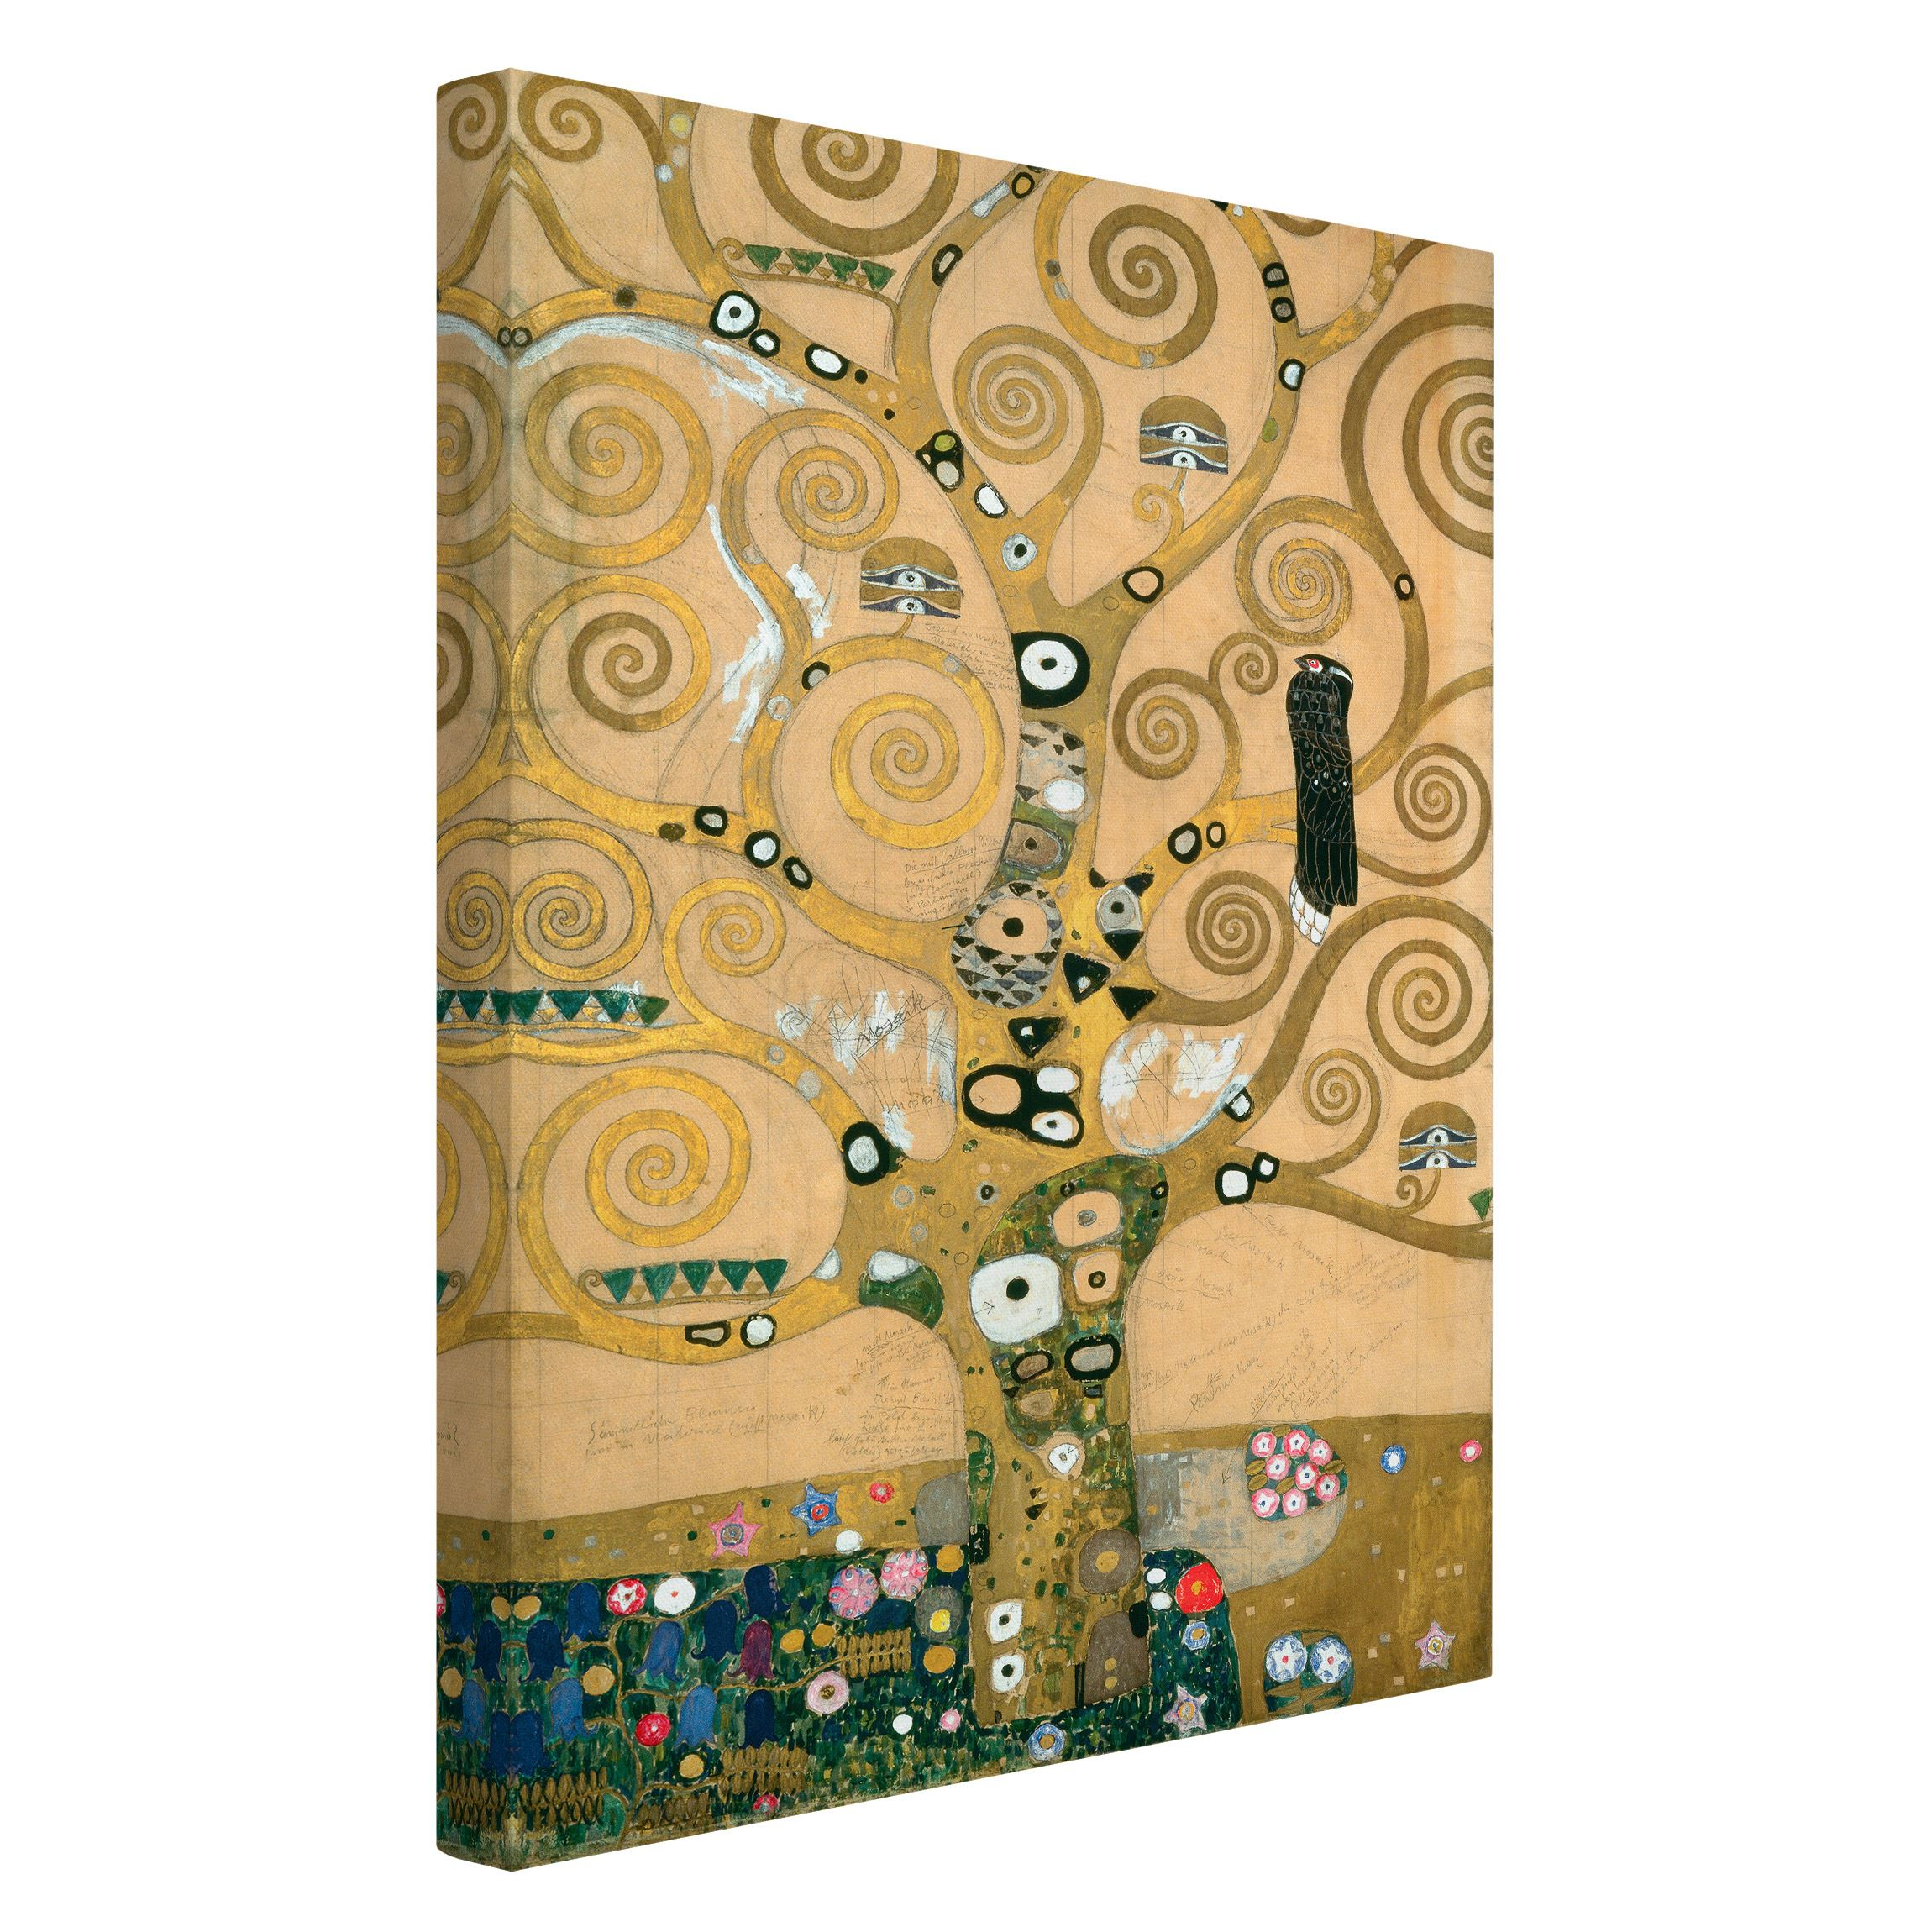 leinwandbild gustav klimt kunstdruck der lebensbaum hoch 3 2 jugendstil. Black Bedroom Furniture Sets. Home Design Ideas